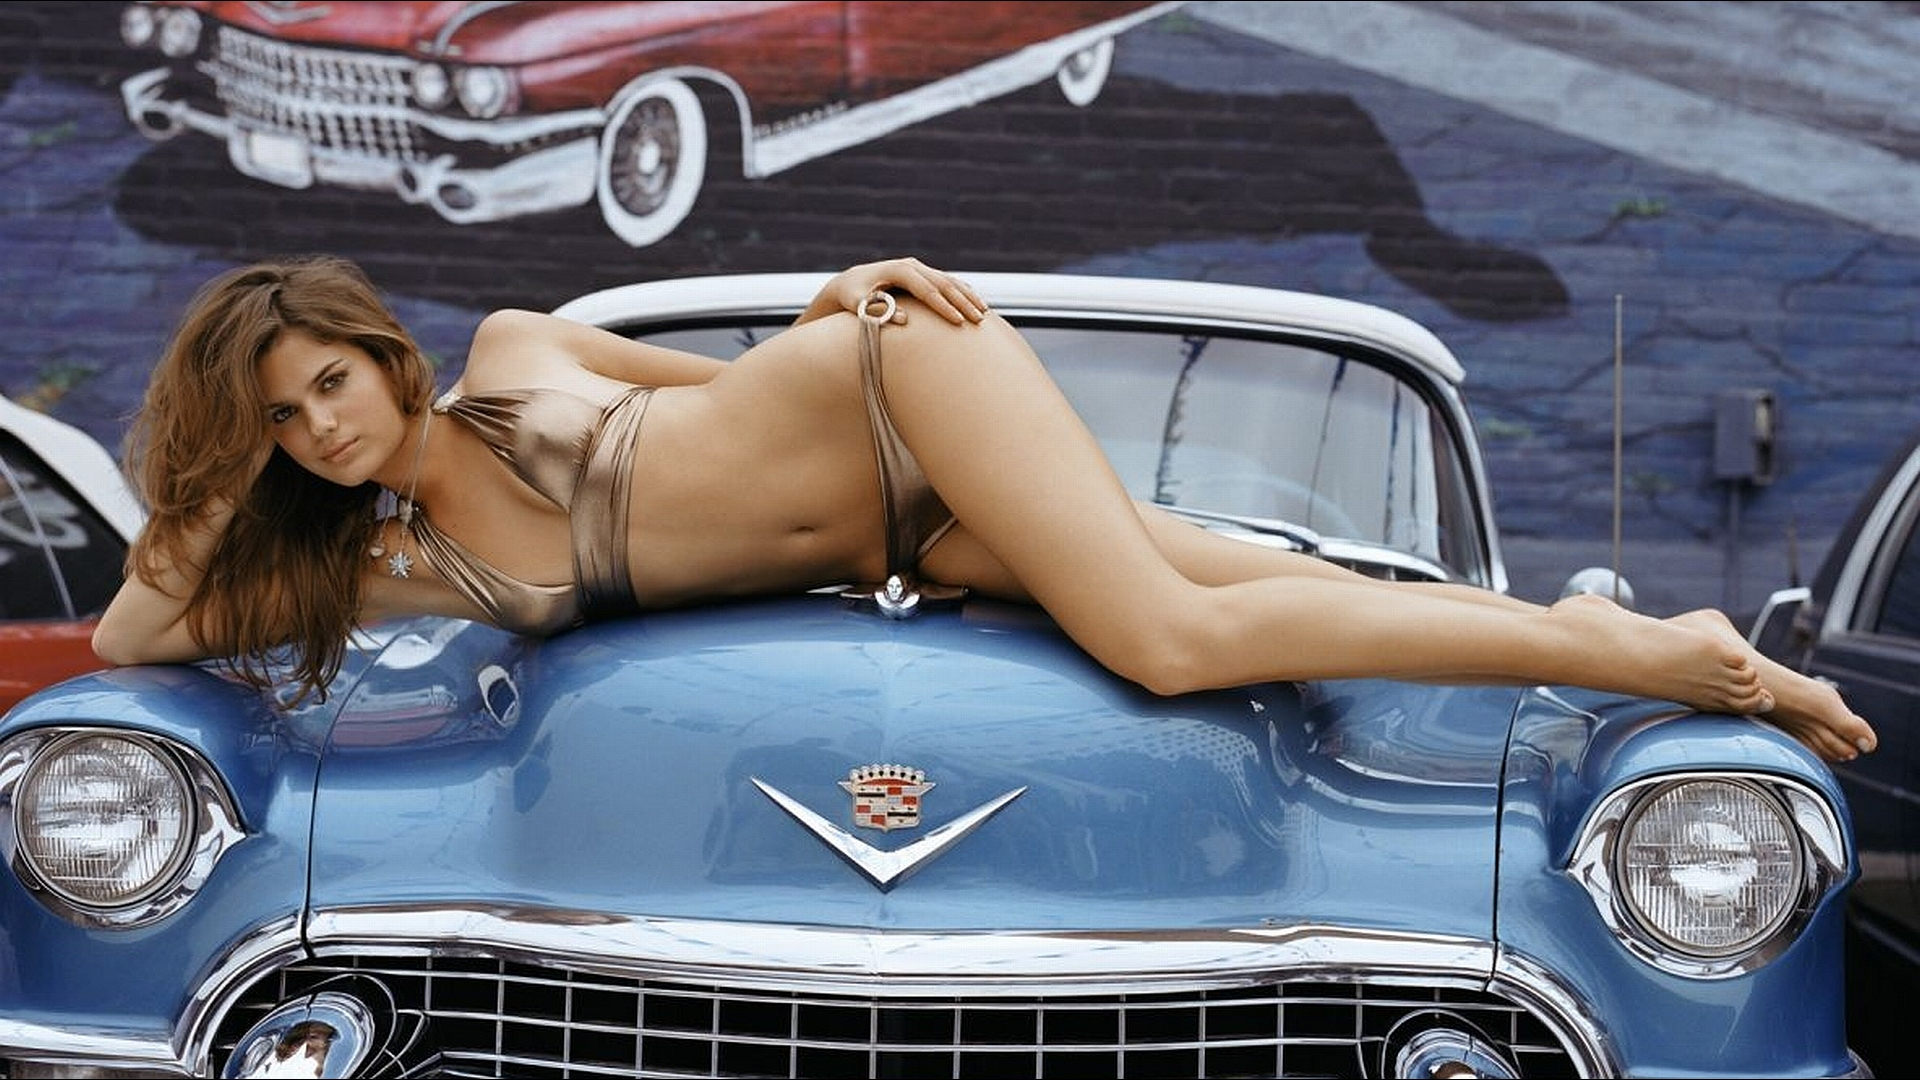 Chevrolet Picture Free Hd Of Classic Race Sports Image